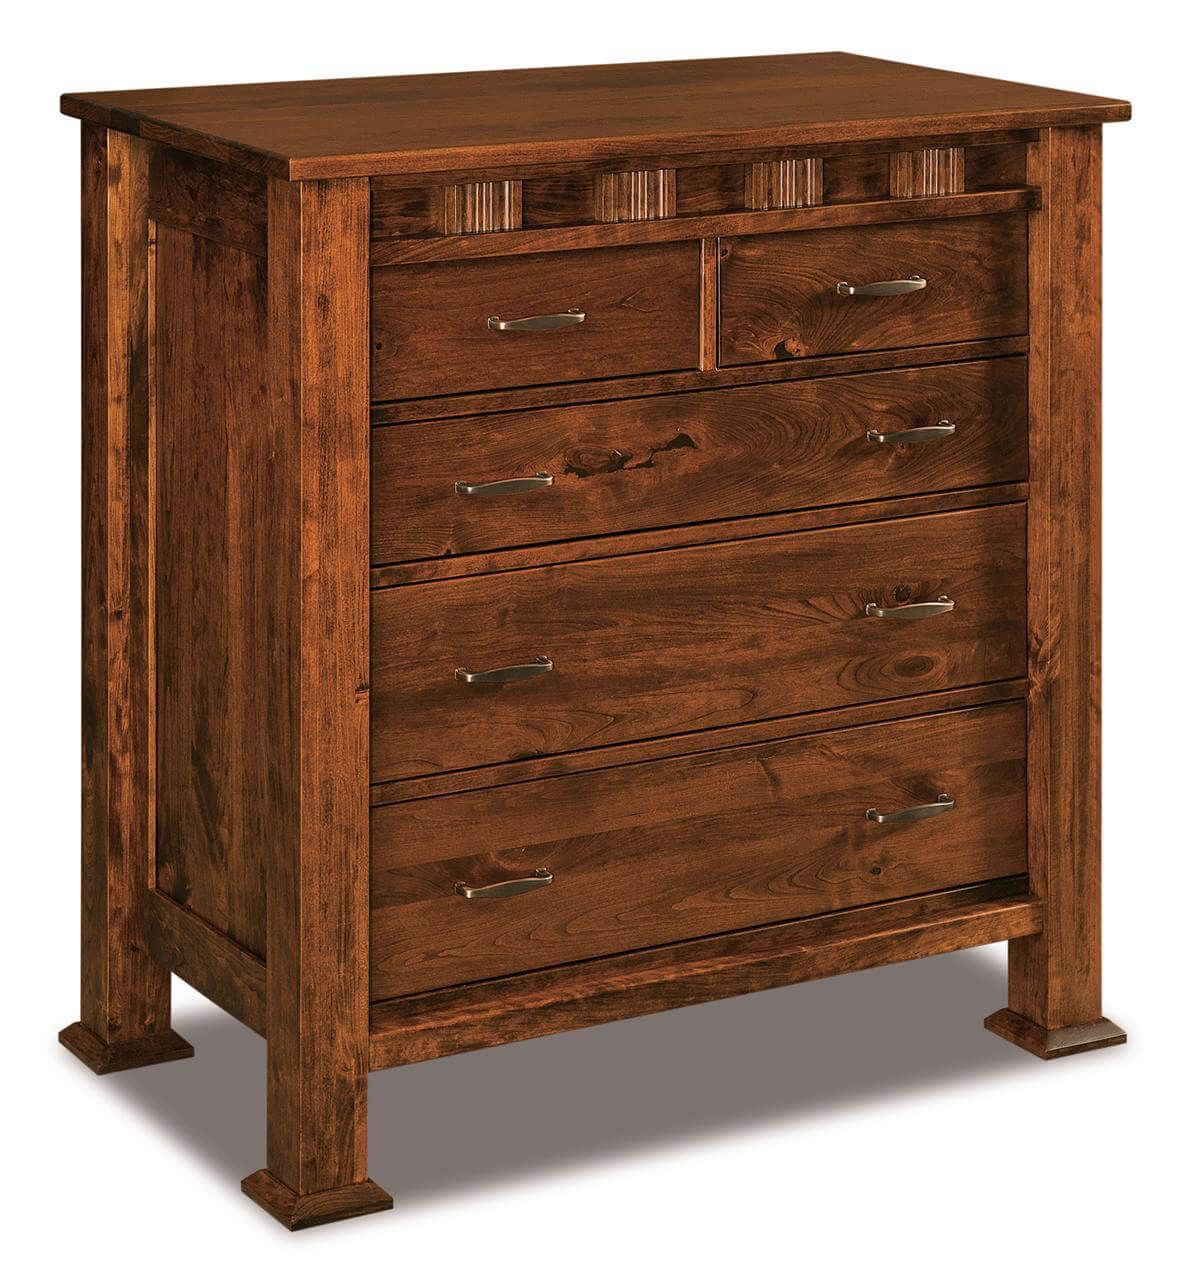 Tuskegee 5-Drawer Child's Chest